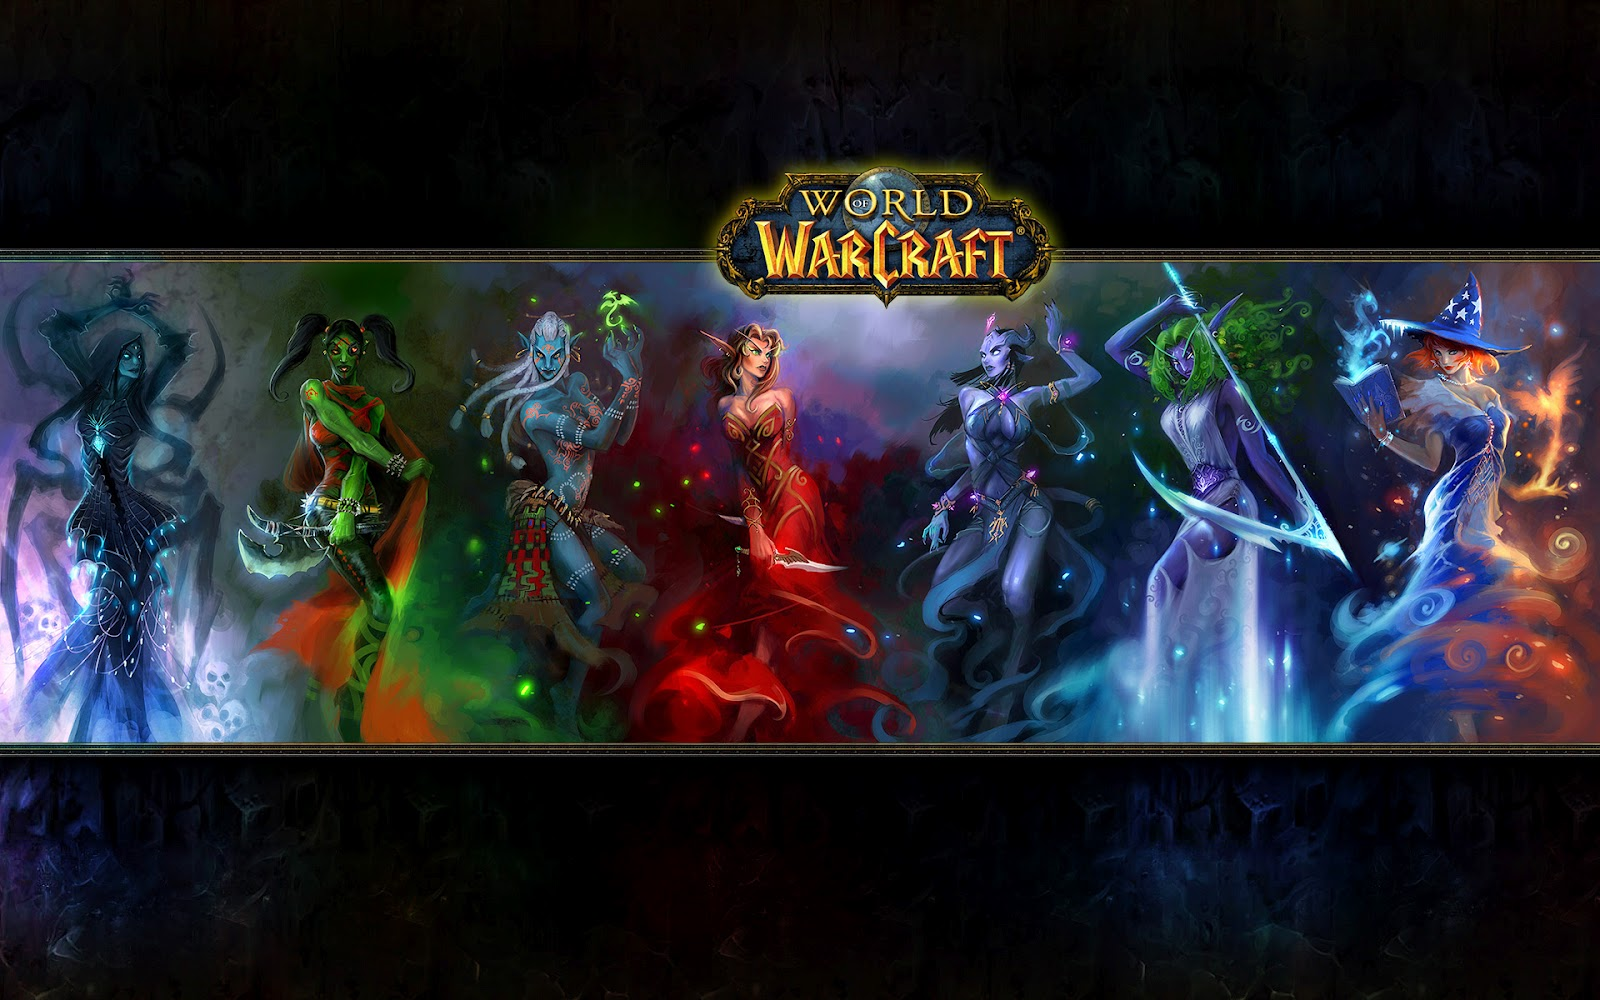 http://2.bp.blogspot.com/-xhrkqMqJjwk/UAzKo3WOArI/AAAAAAAAB6w/-XtCfazPgSw/s1600/world+of+warcraft+girls+female+women+wallpaper+background+desktop+blizzard+mmo+online+game.jpg